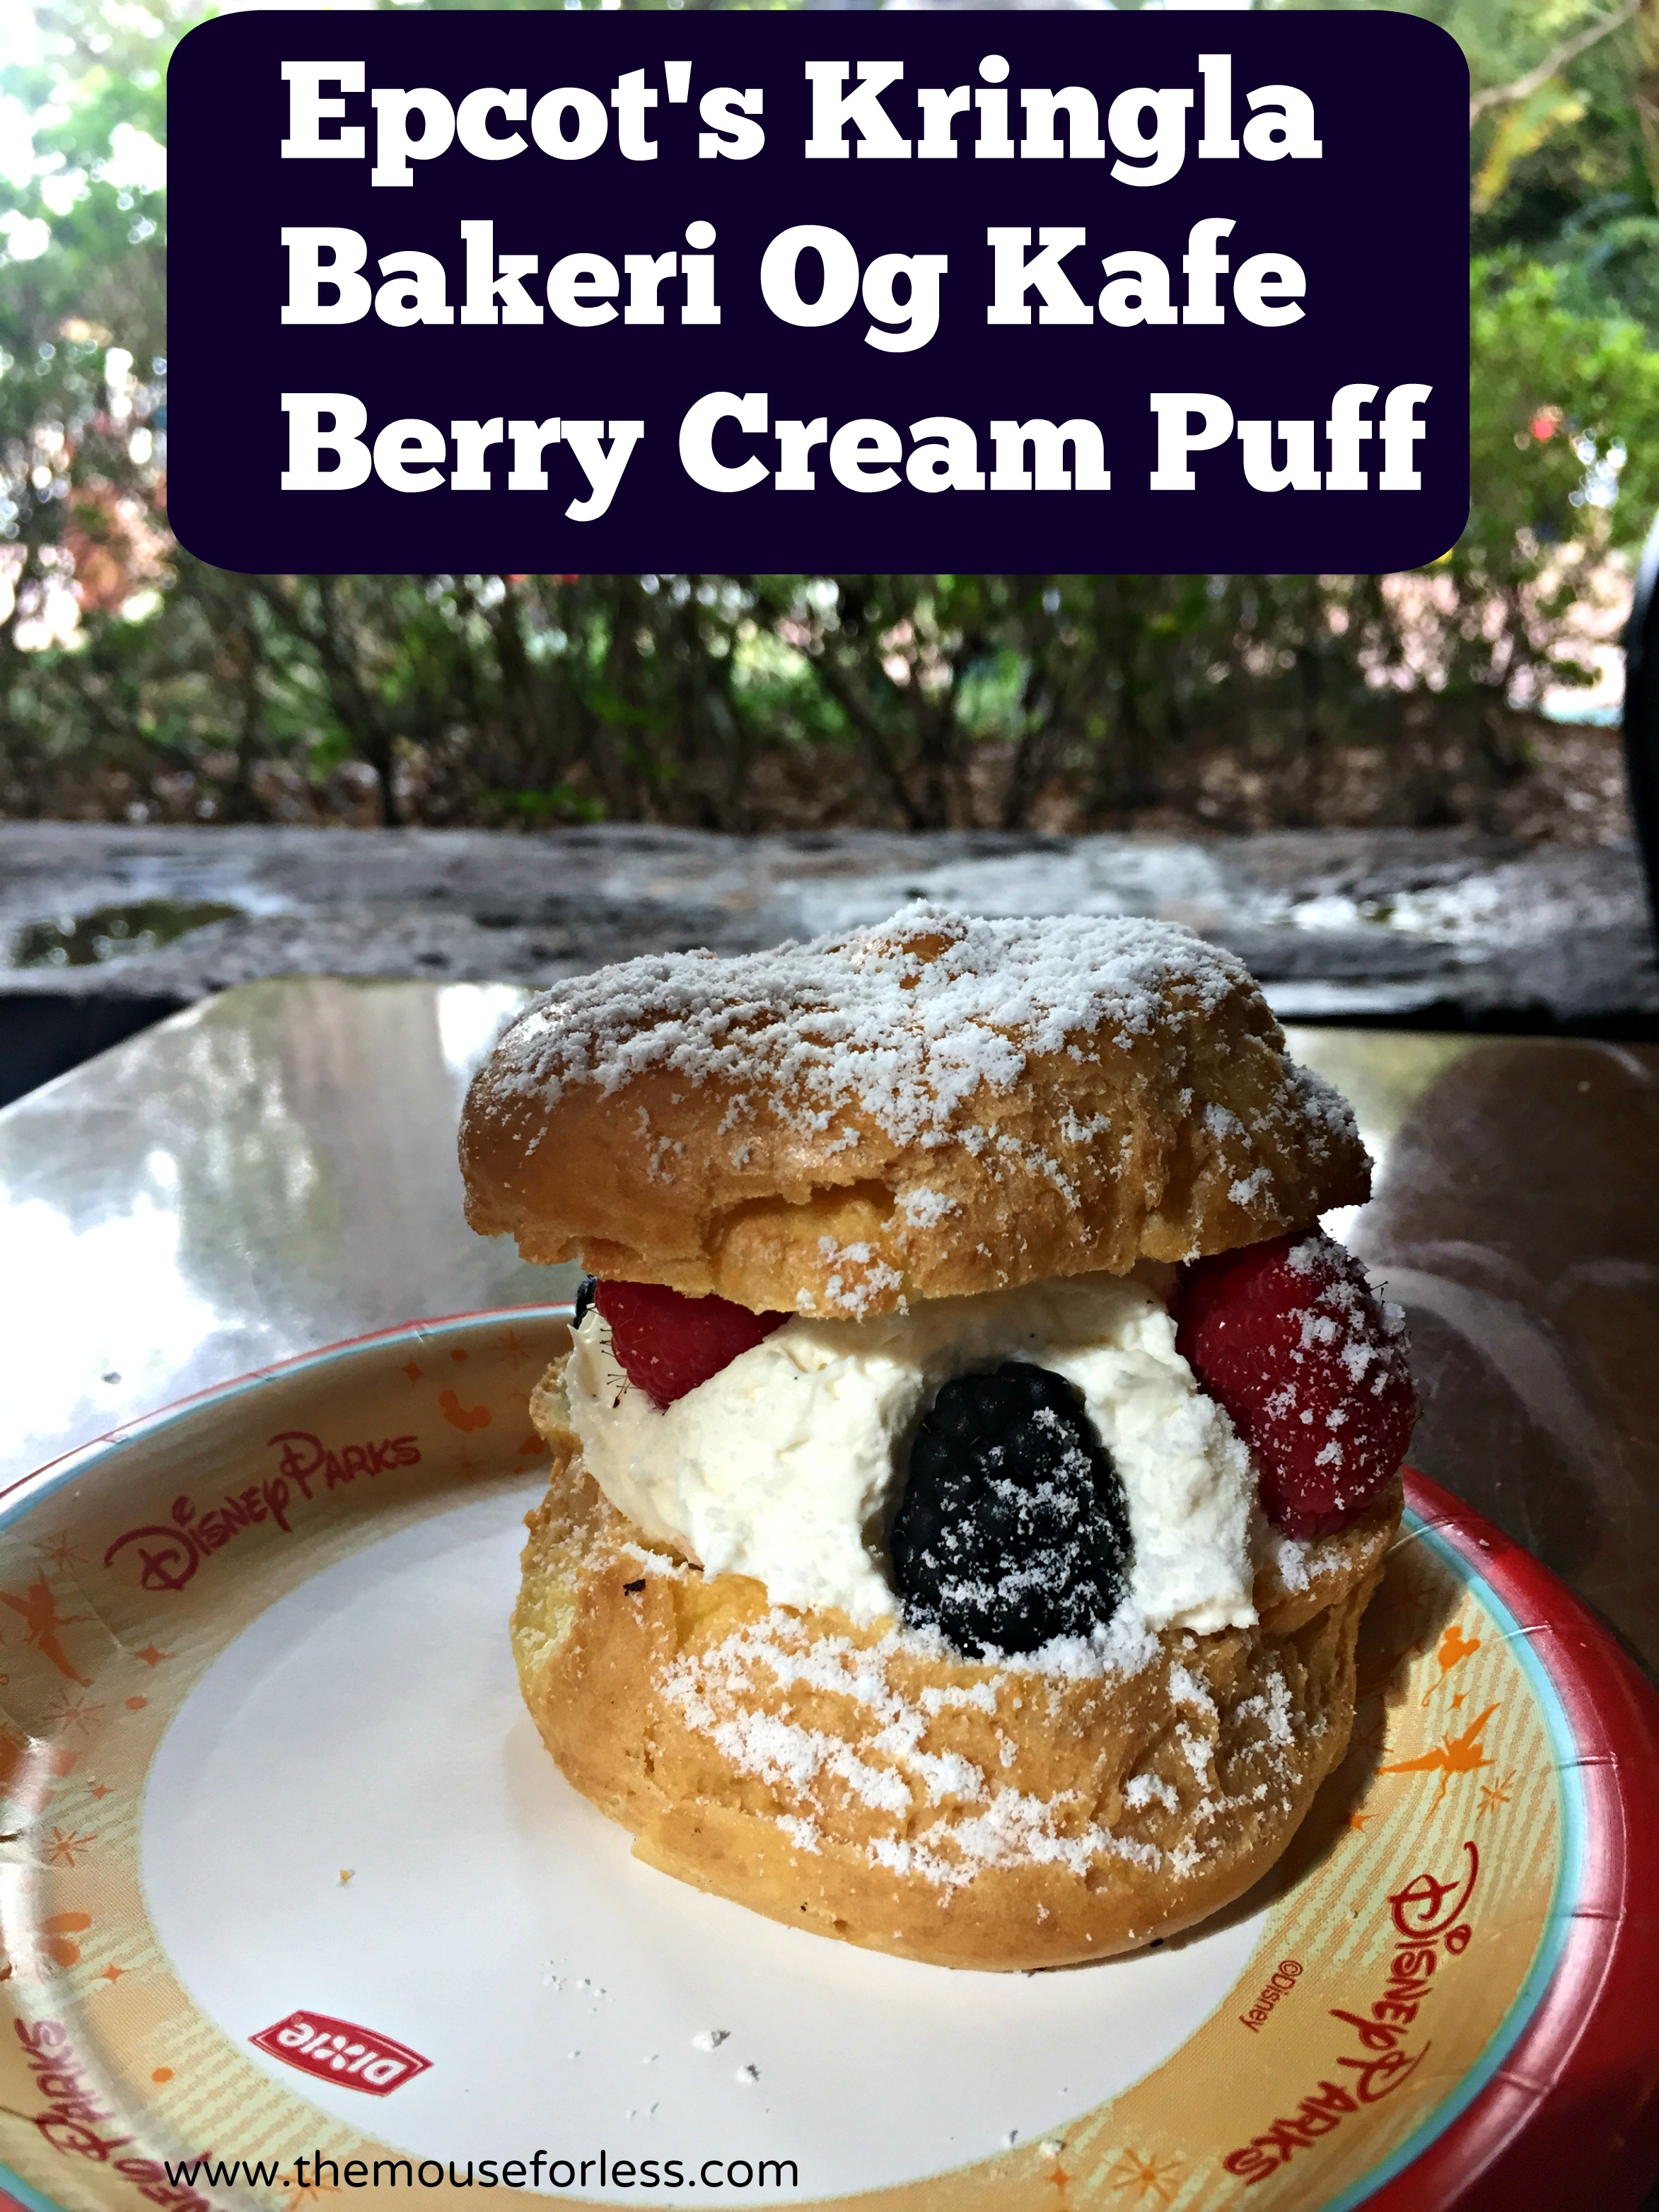 Berry Cream Puff at Kringla Bakeri Og Kafe Menu - Table Service Restaurant at Epcot #DisneyDining #WaltDisneyWorld